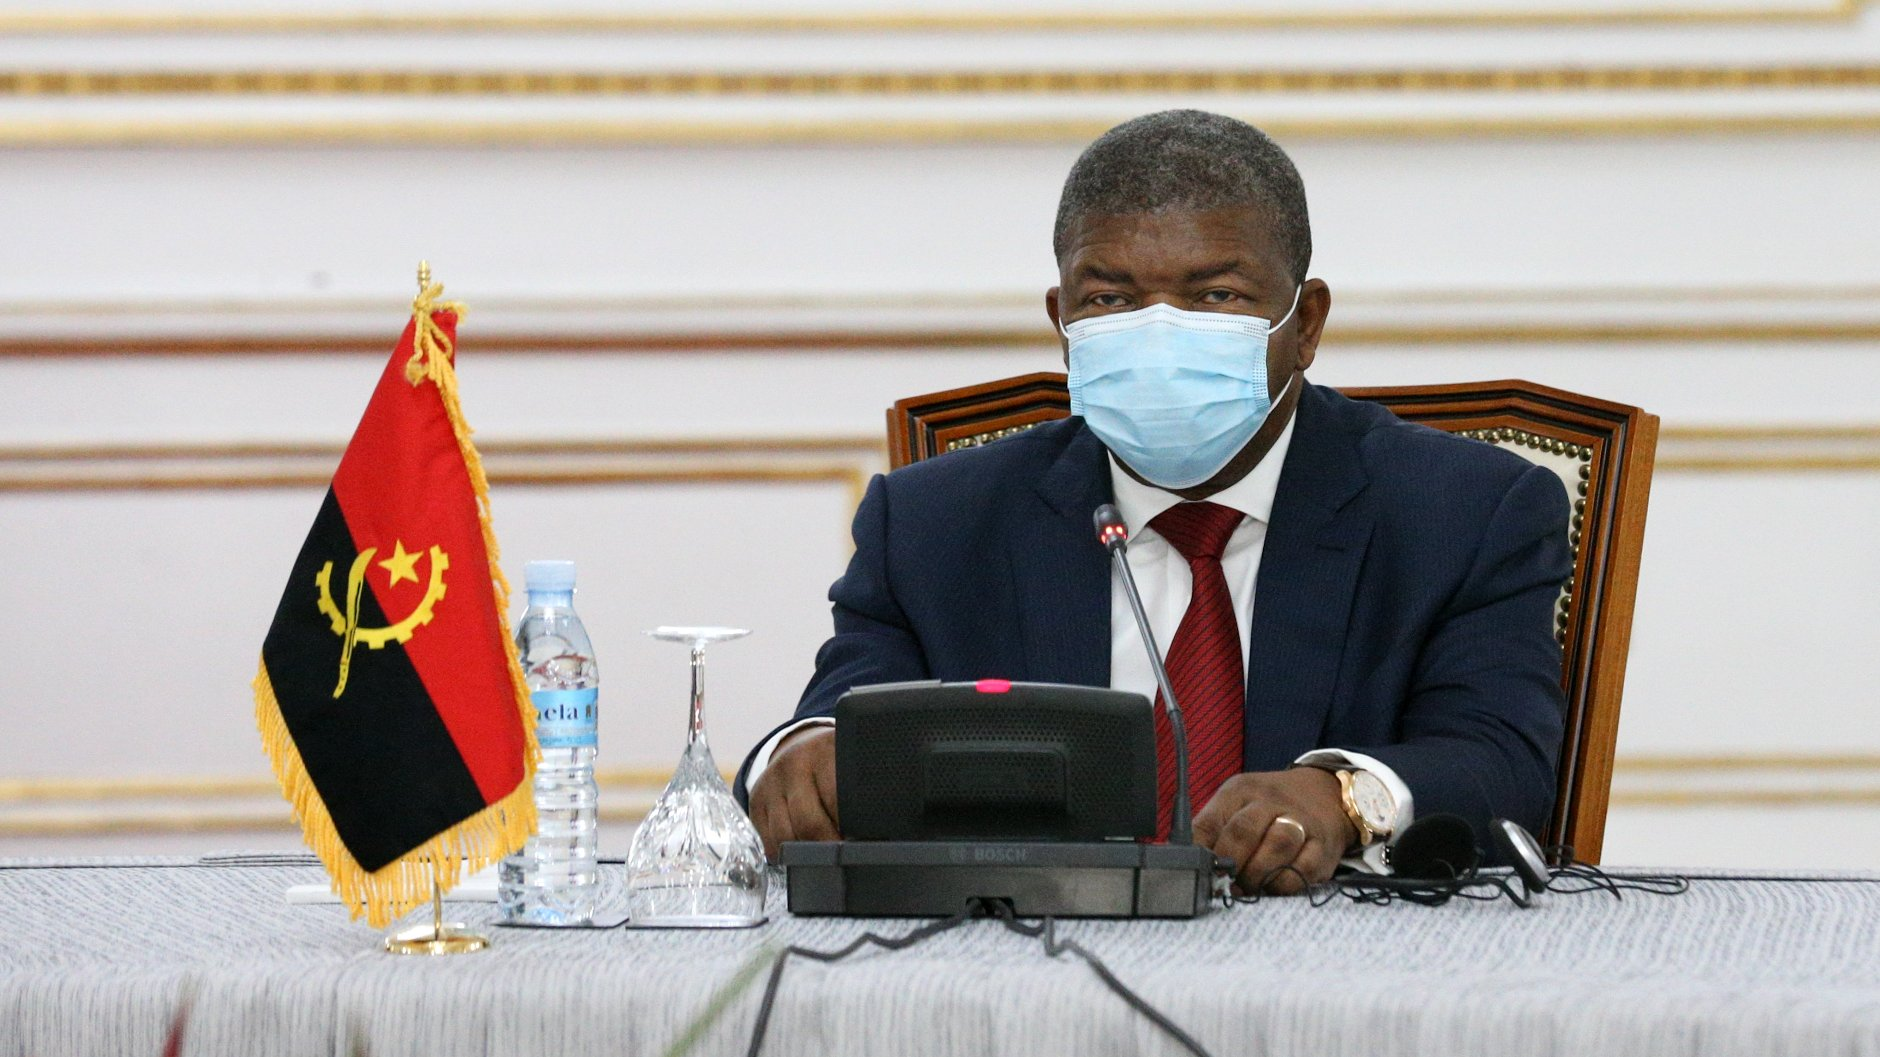 President of Angola Joao Lourenco and the President of the European Council Charles Michel (not seen) attend a press conference after a meeting at Presidential Palace in Luanda, Angola, 30 April 2021. AMPE ROGERIO/LUSA